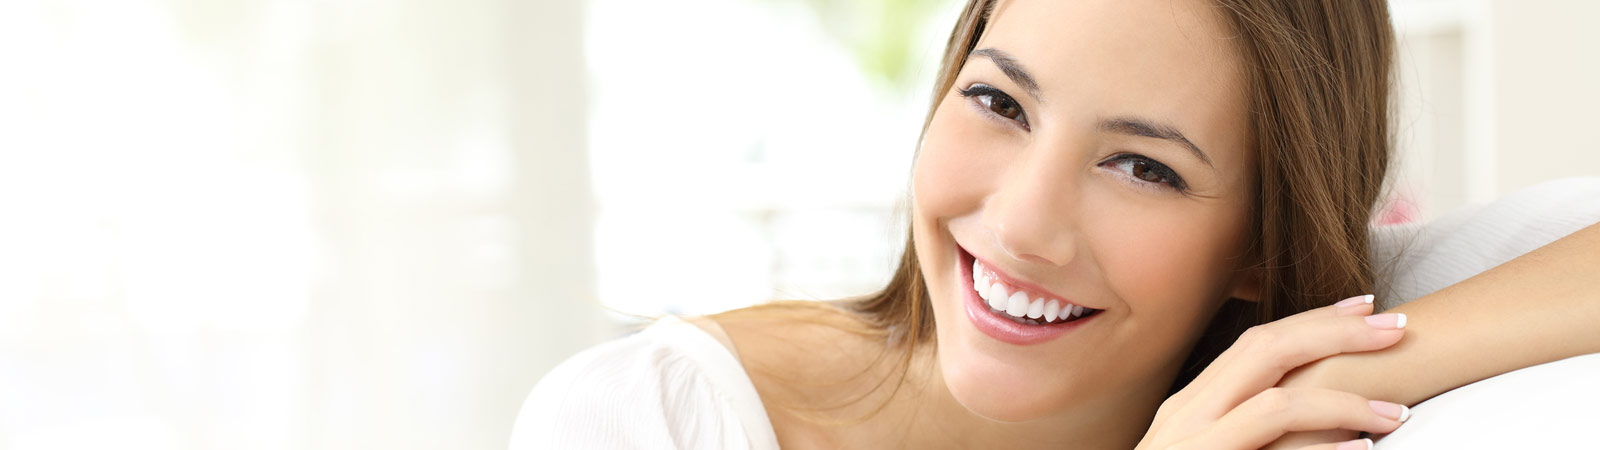 Beauty woman with white perfect smile